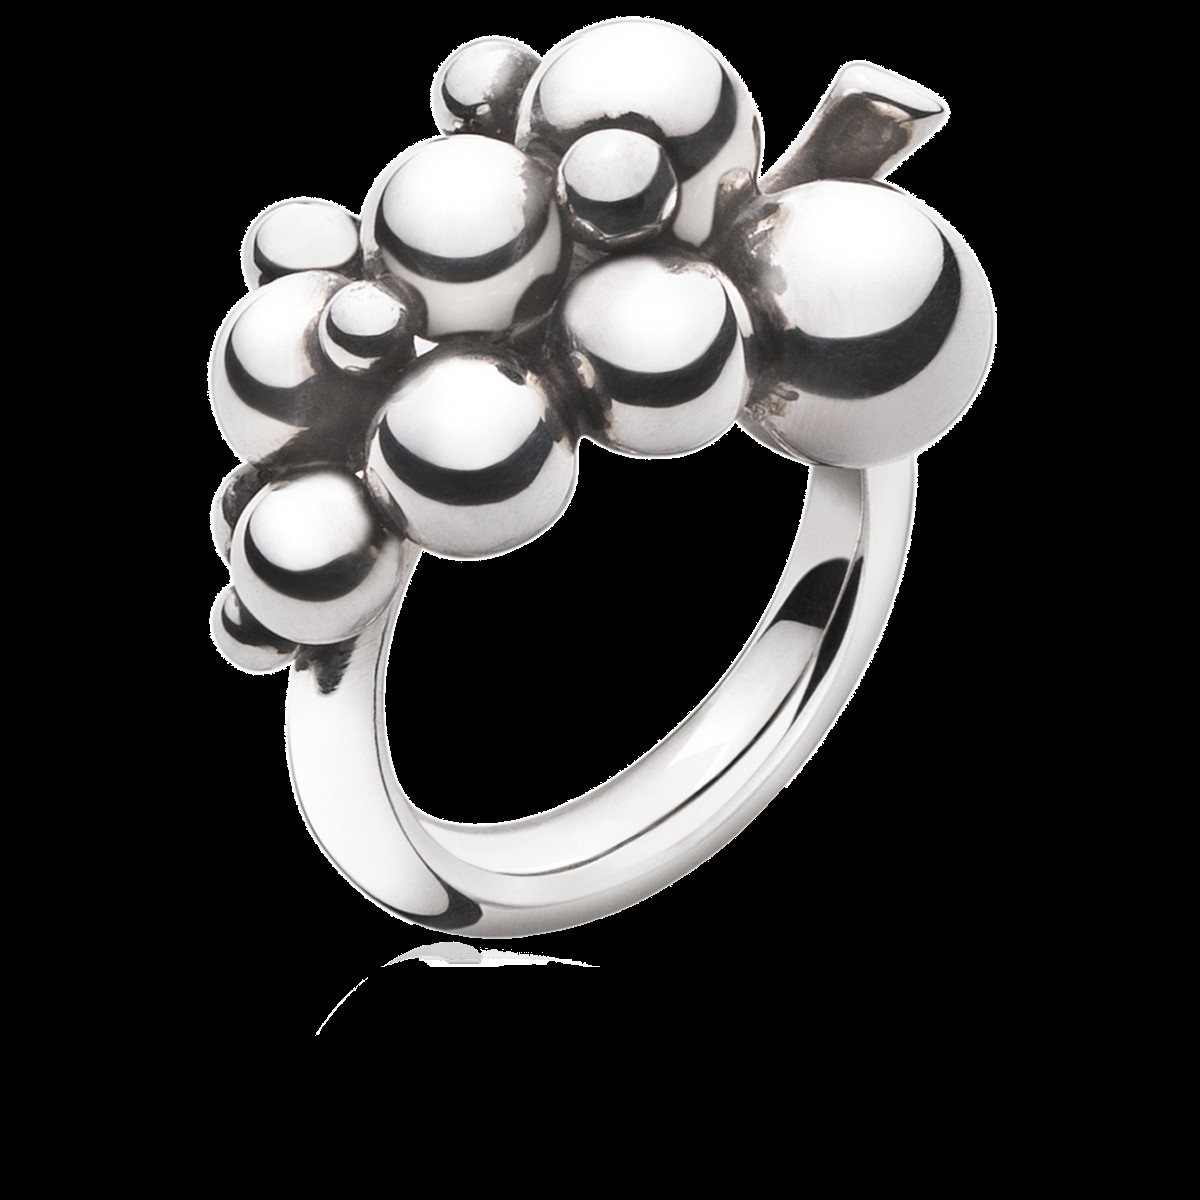 georg jensen indulgence vase of moonlight grapes ring in sterling silver small georg jensen throughout pack 3558680 1200 0